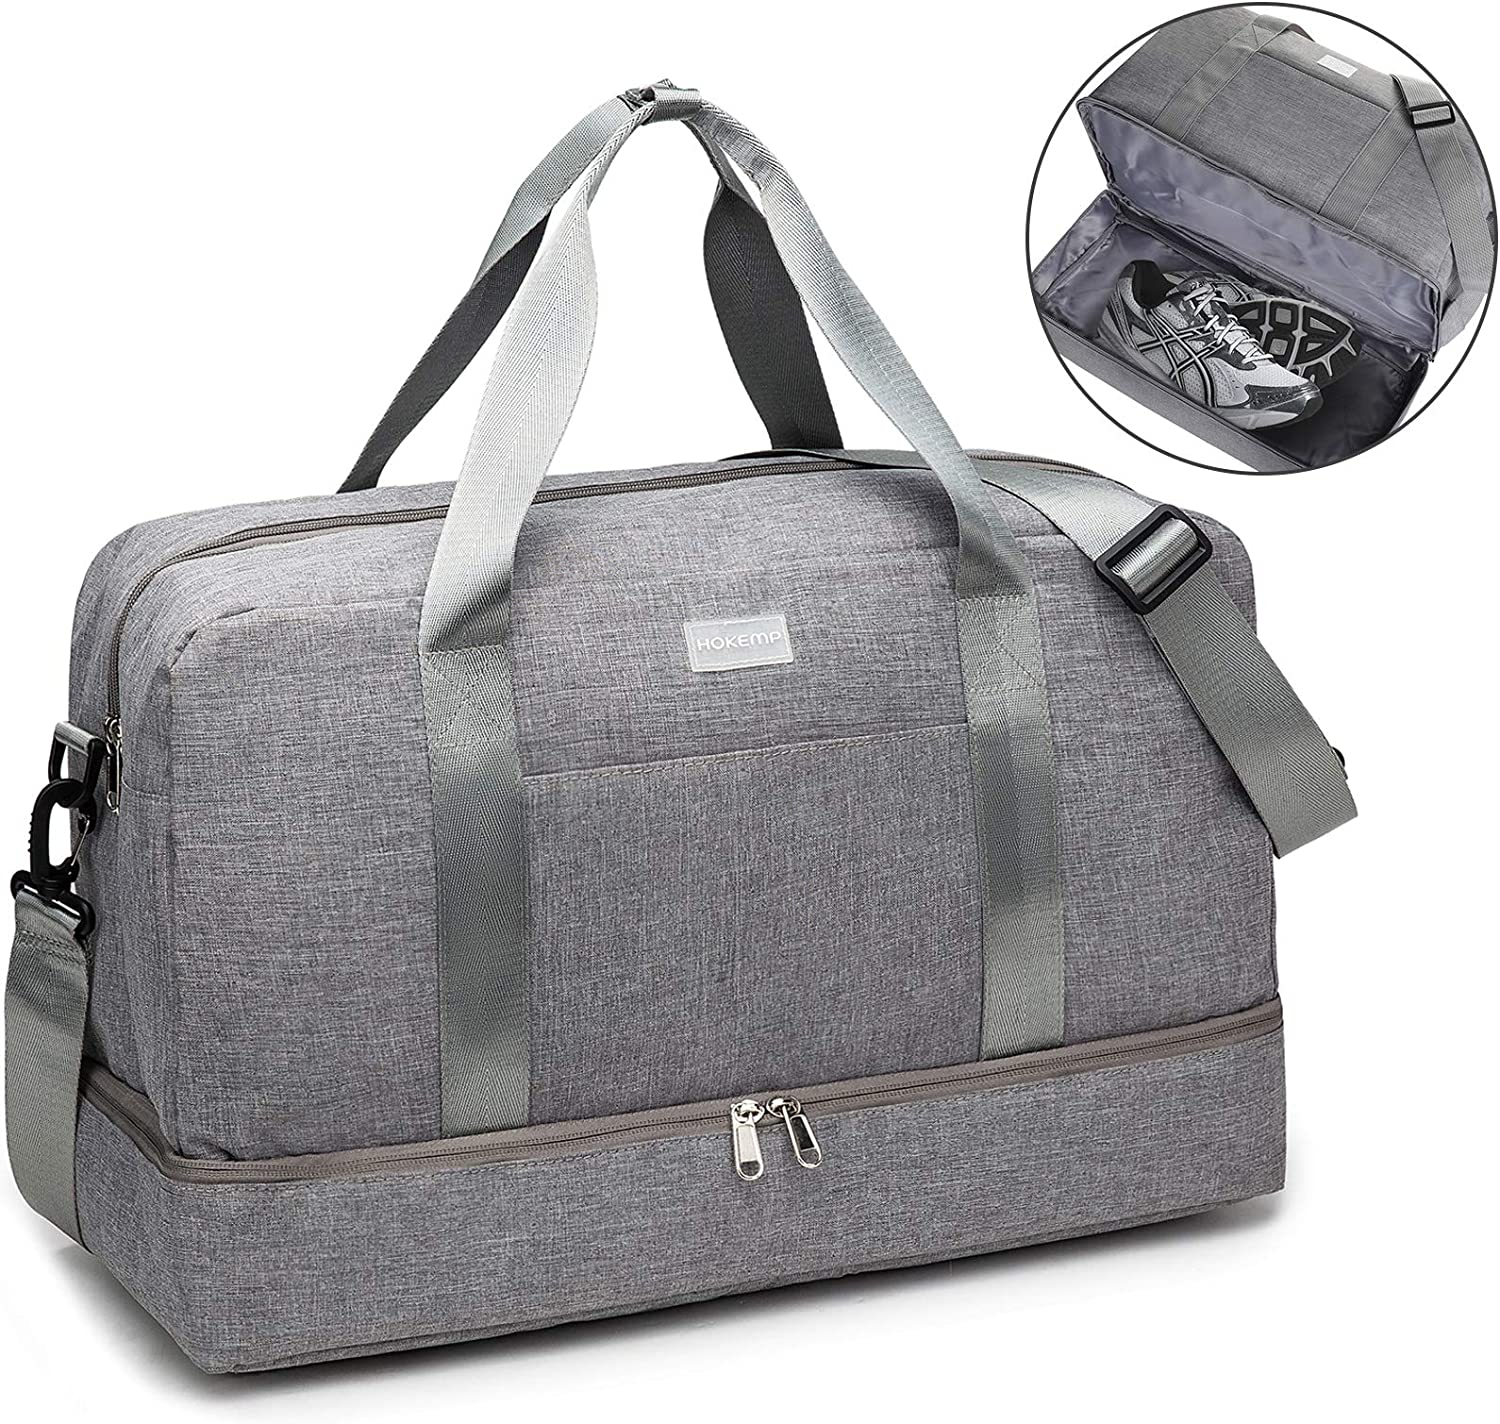 Travel Duffel Unisex Men and Women Large Capacity Canvas Portable Weekend Overnight Travel Bag Sports Duffel Tote Luggage Holdall Handbag Shoulder Bags Gym Sports Luggage Bag Color : Dark Gray